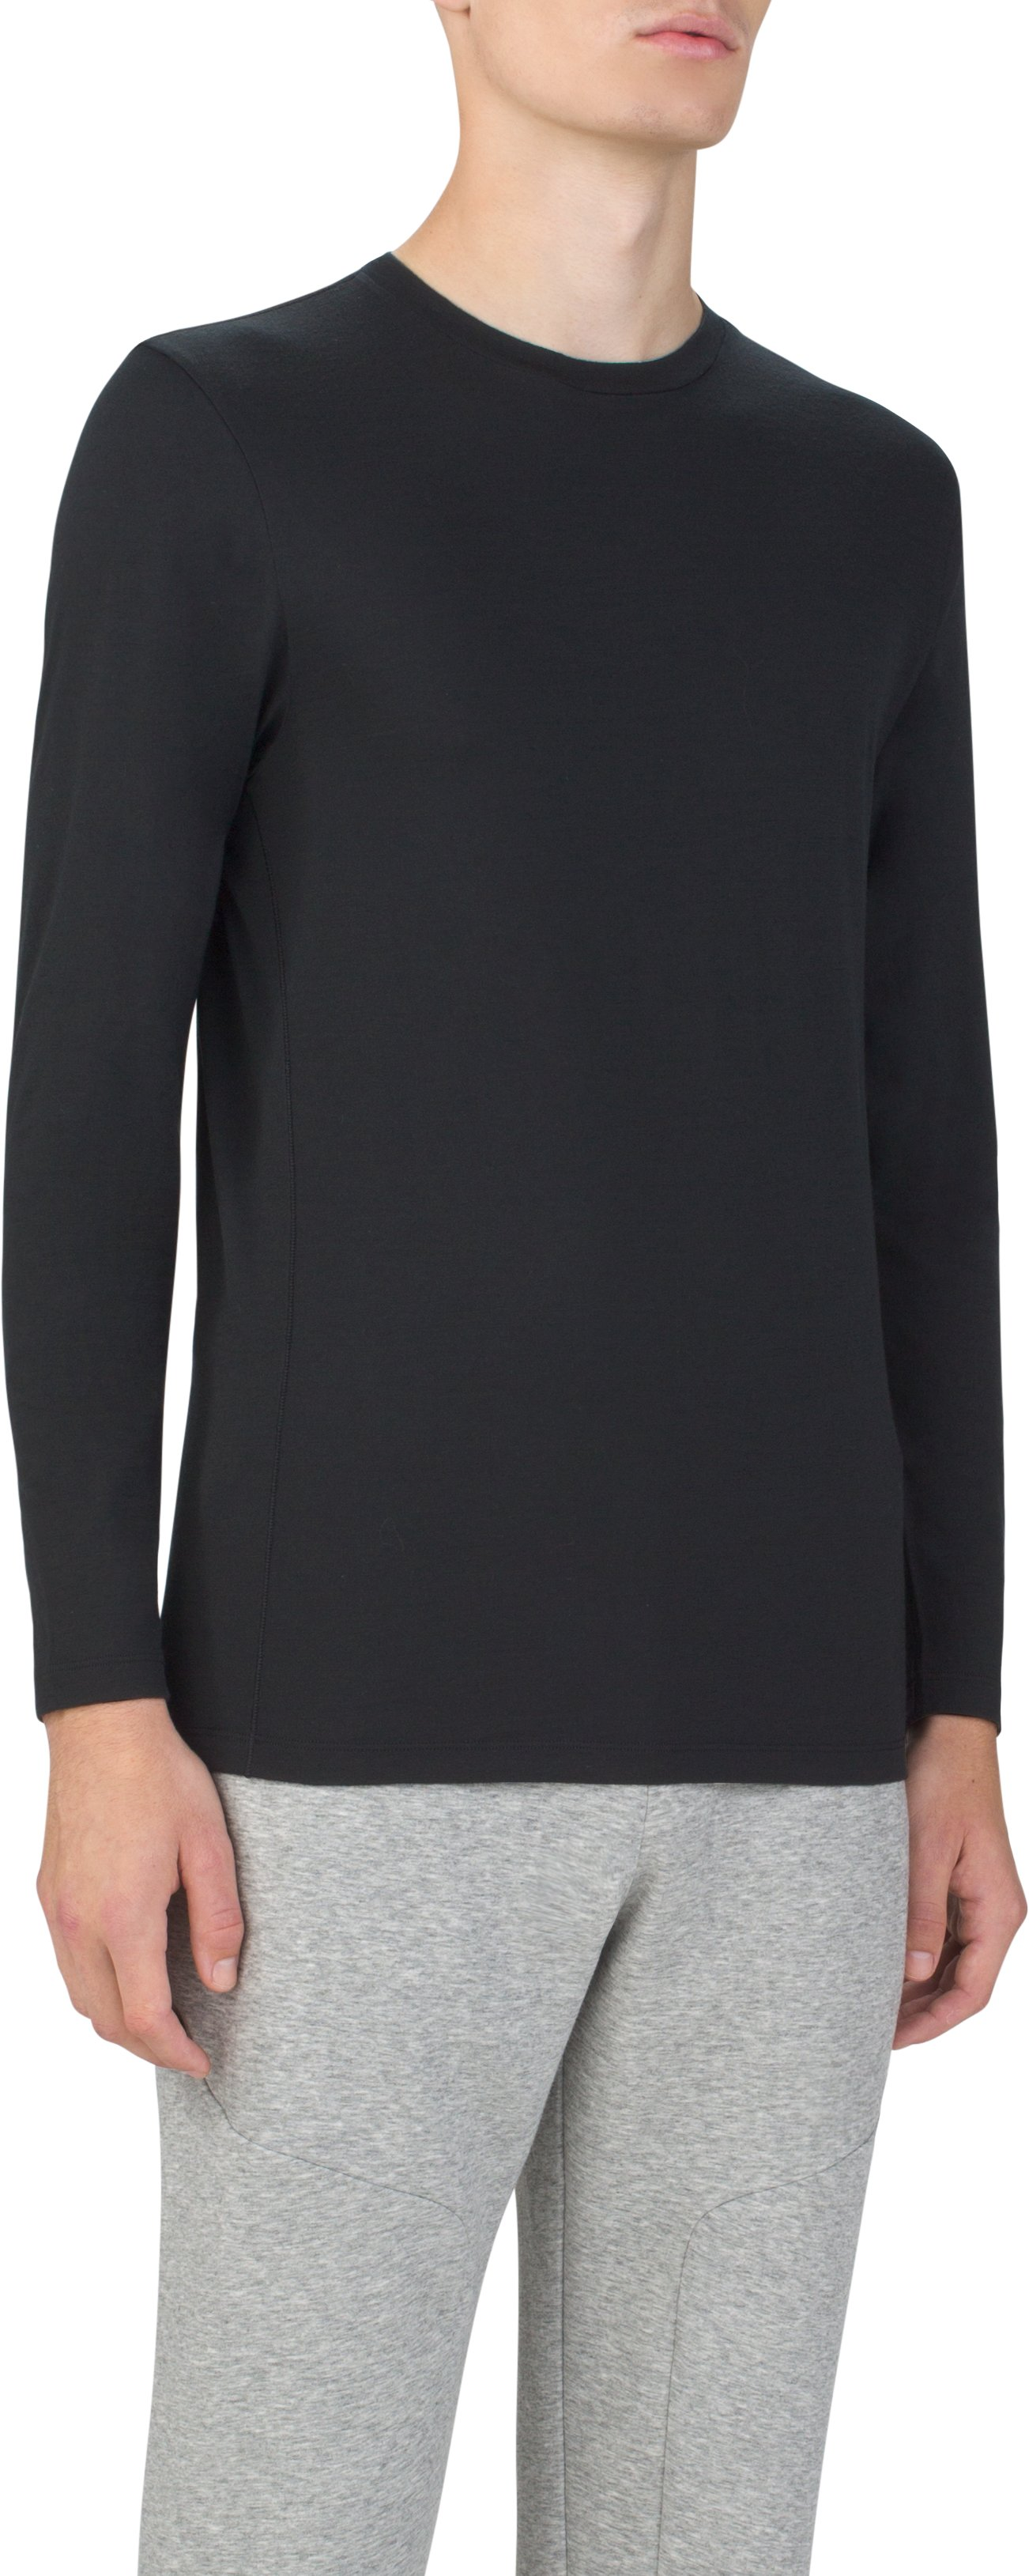 Men's Prime Long Sleeve Crew, Black